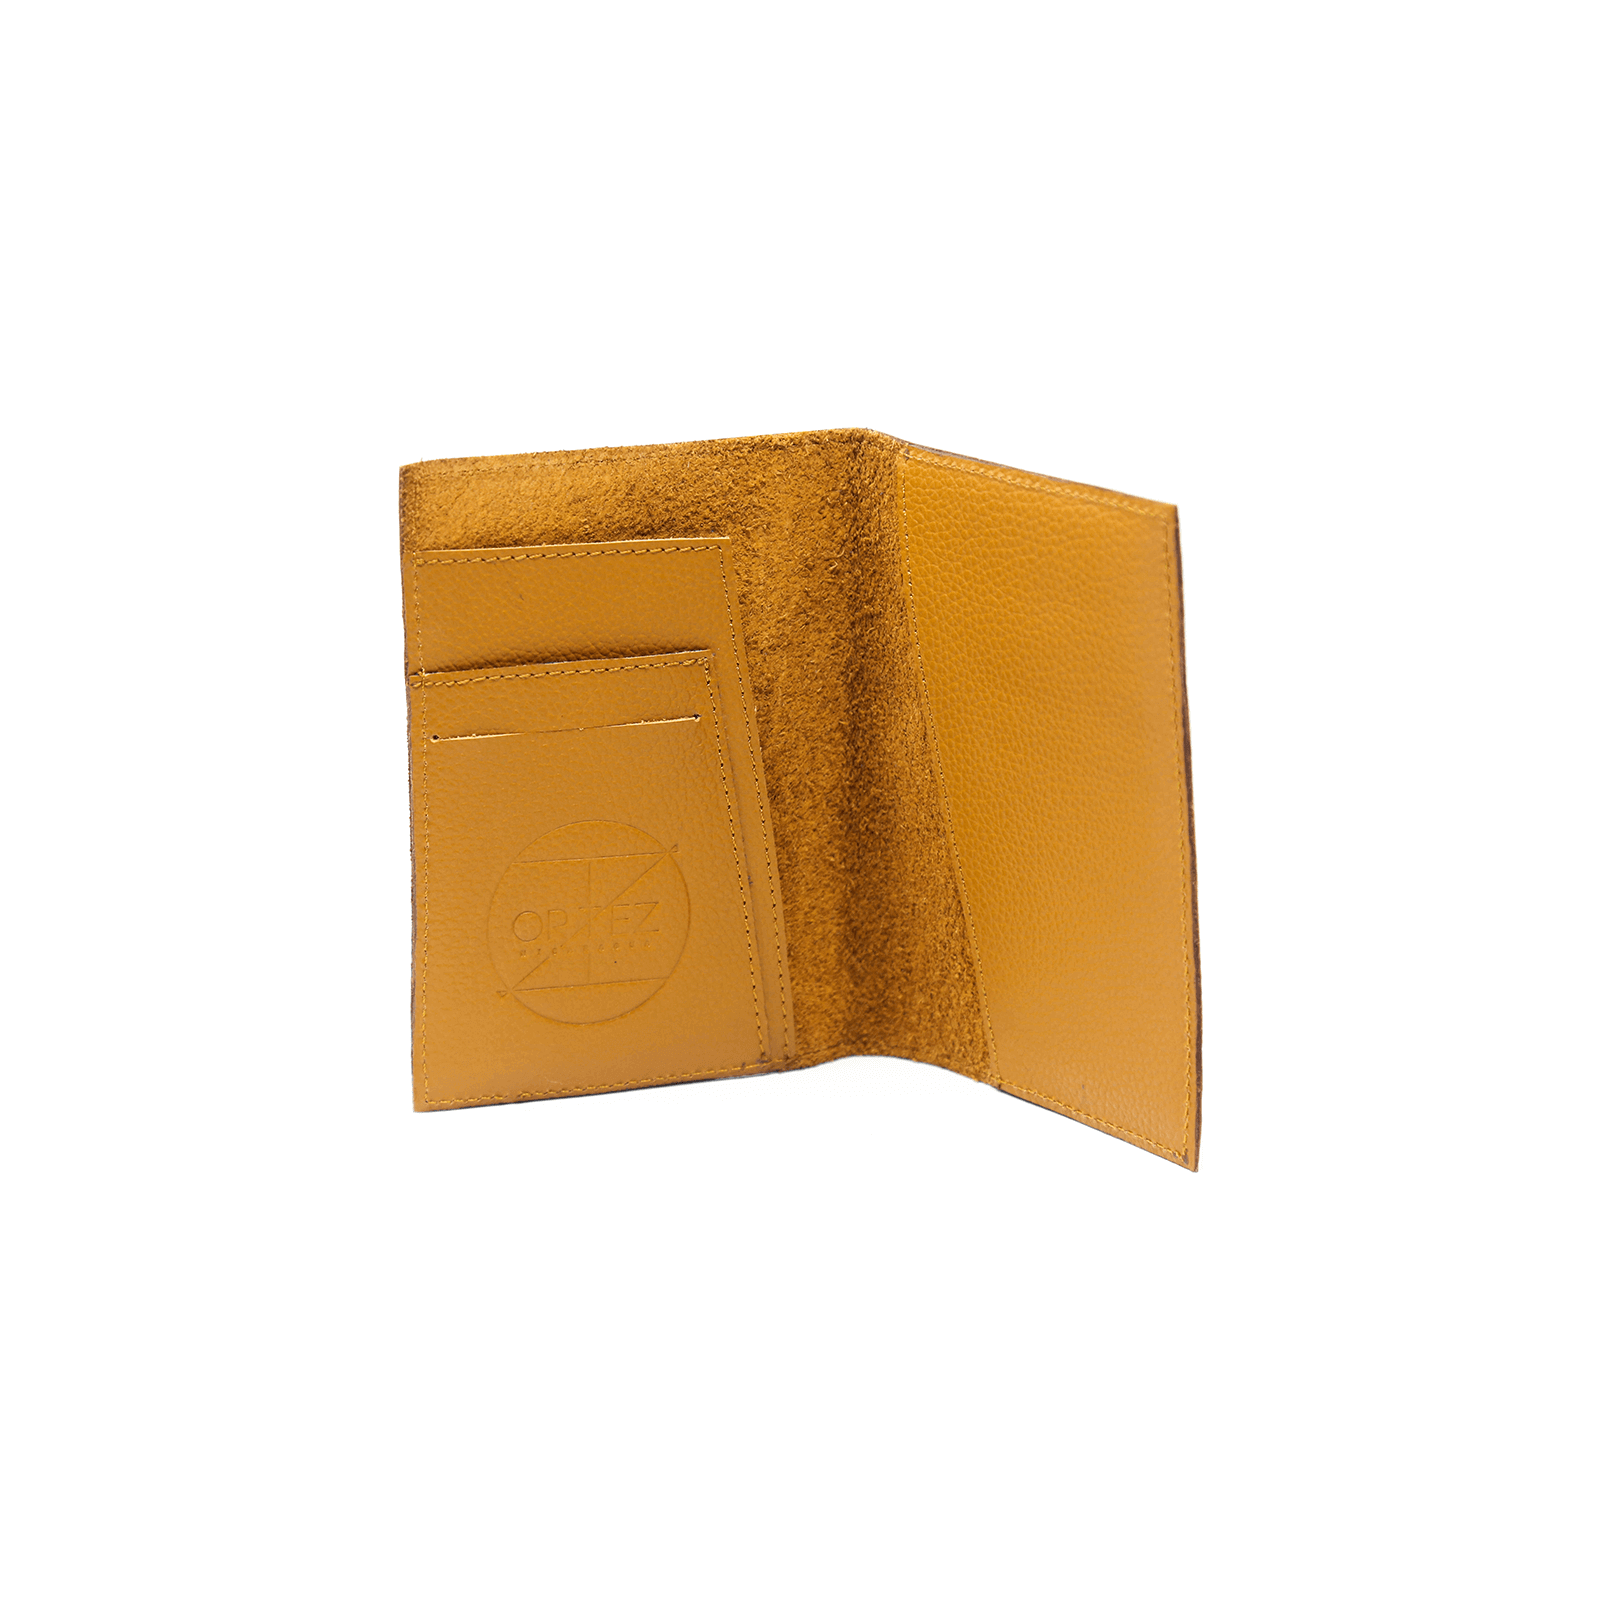 Medium Yellow Passport Wallet